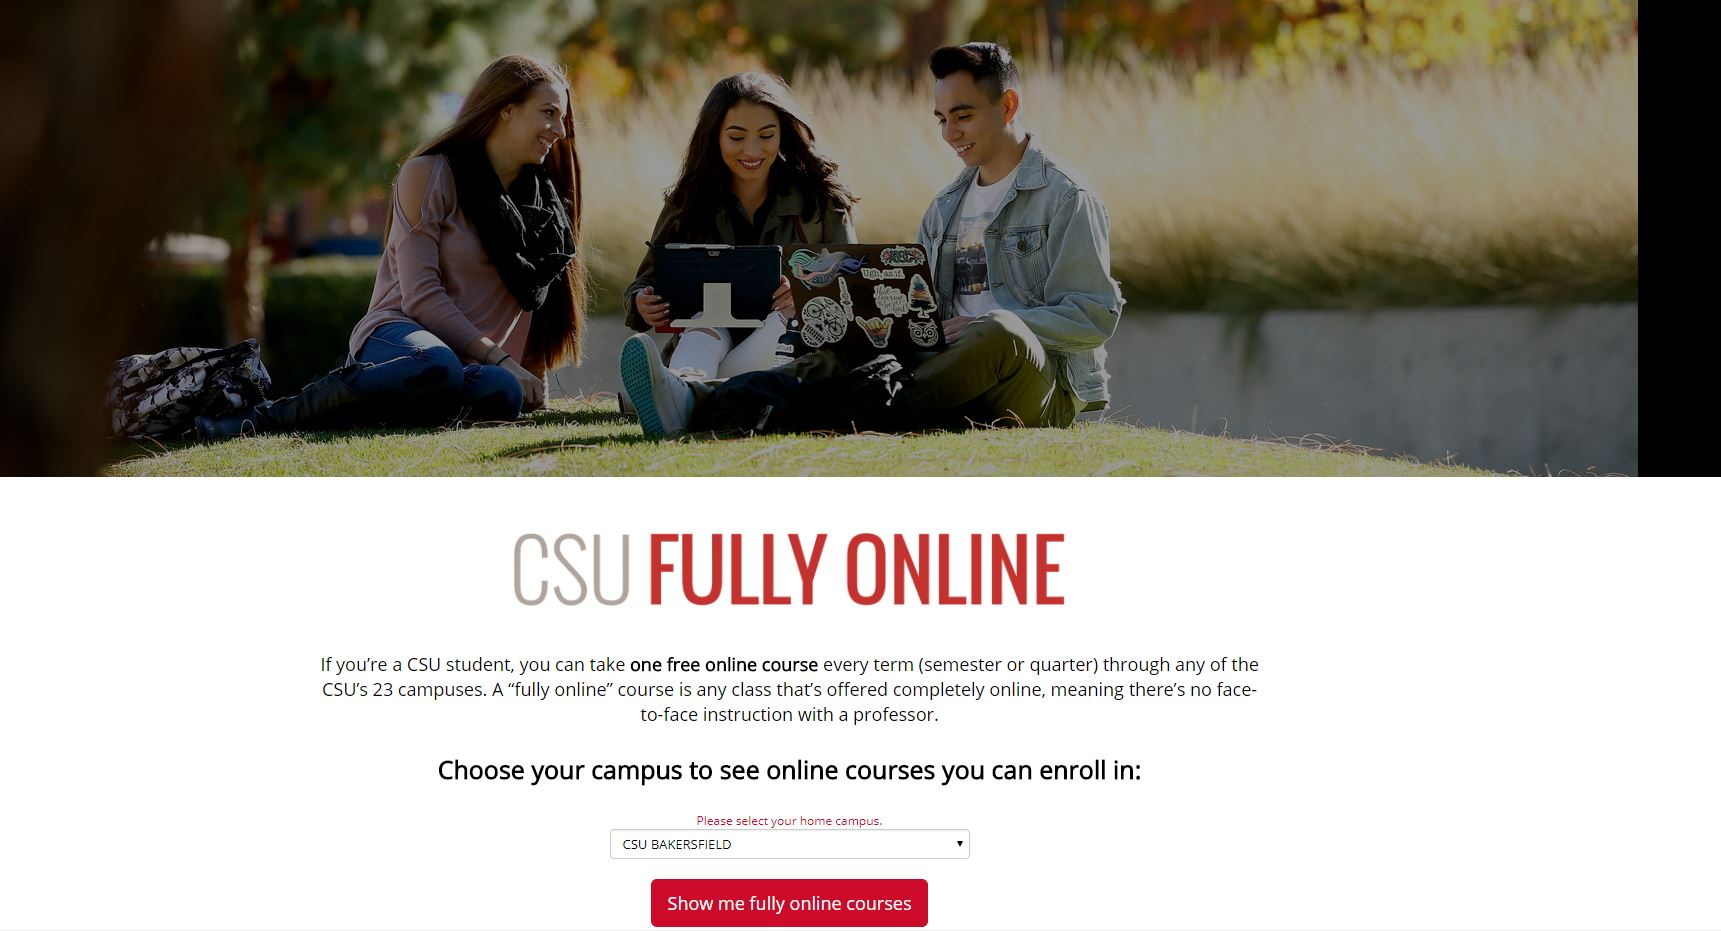 Cal State allows students to take online courses from other system